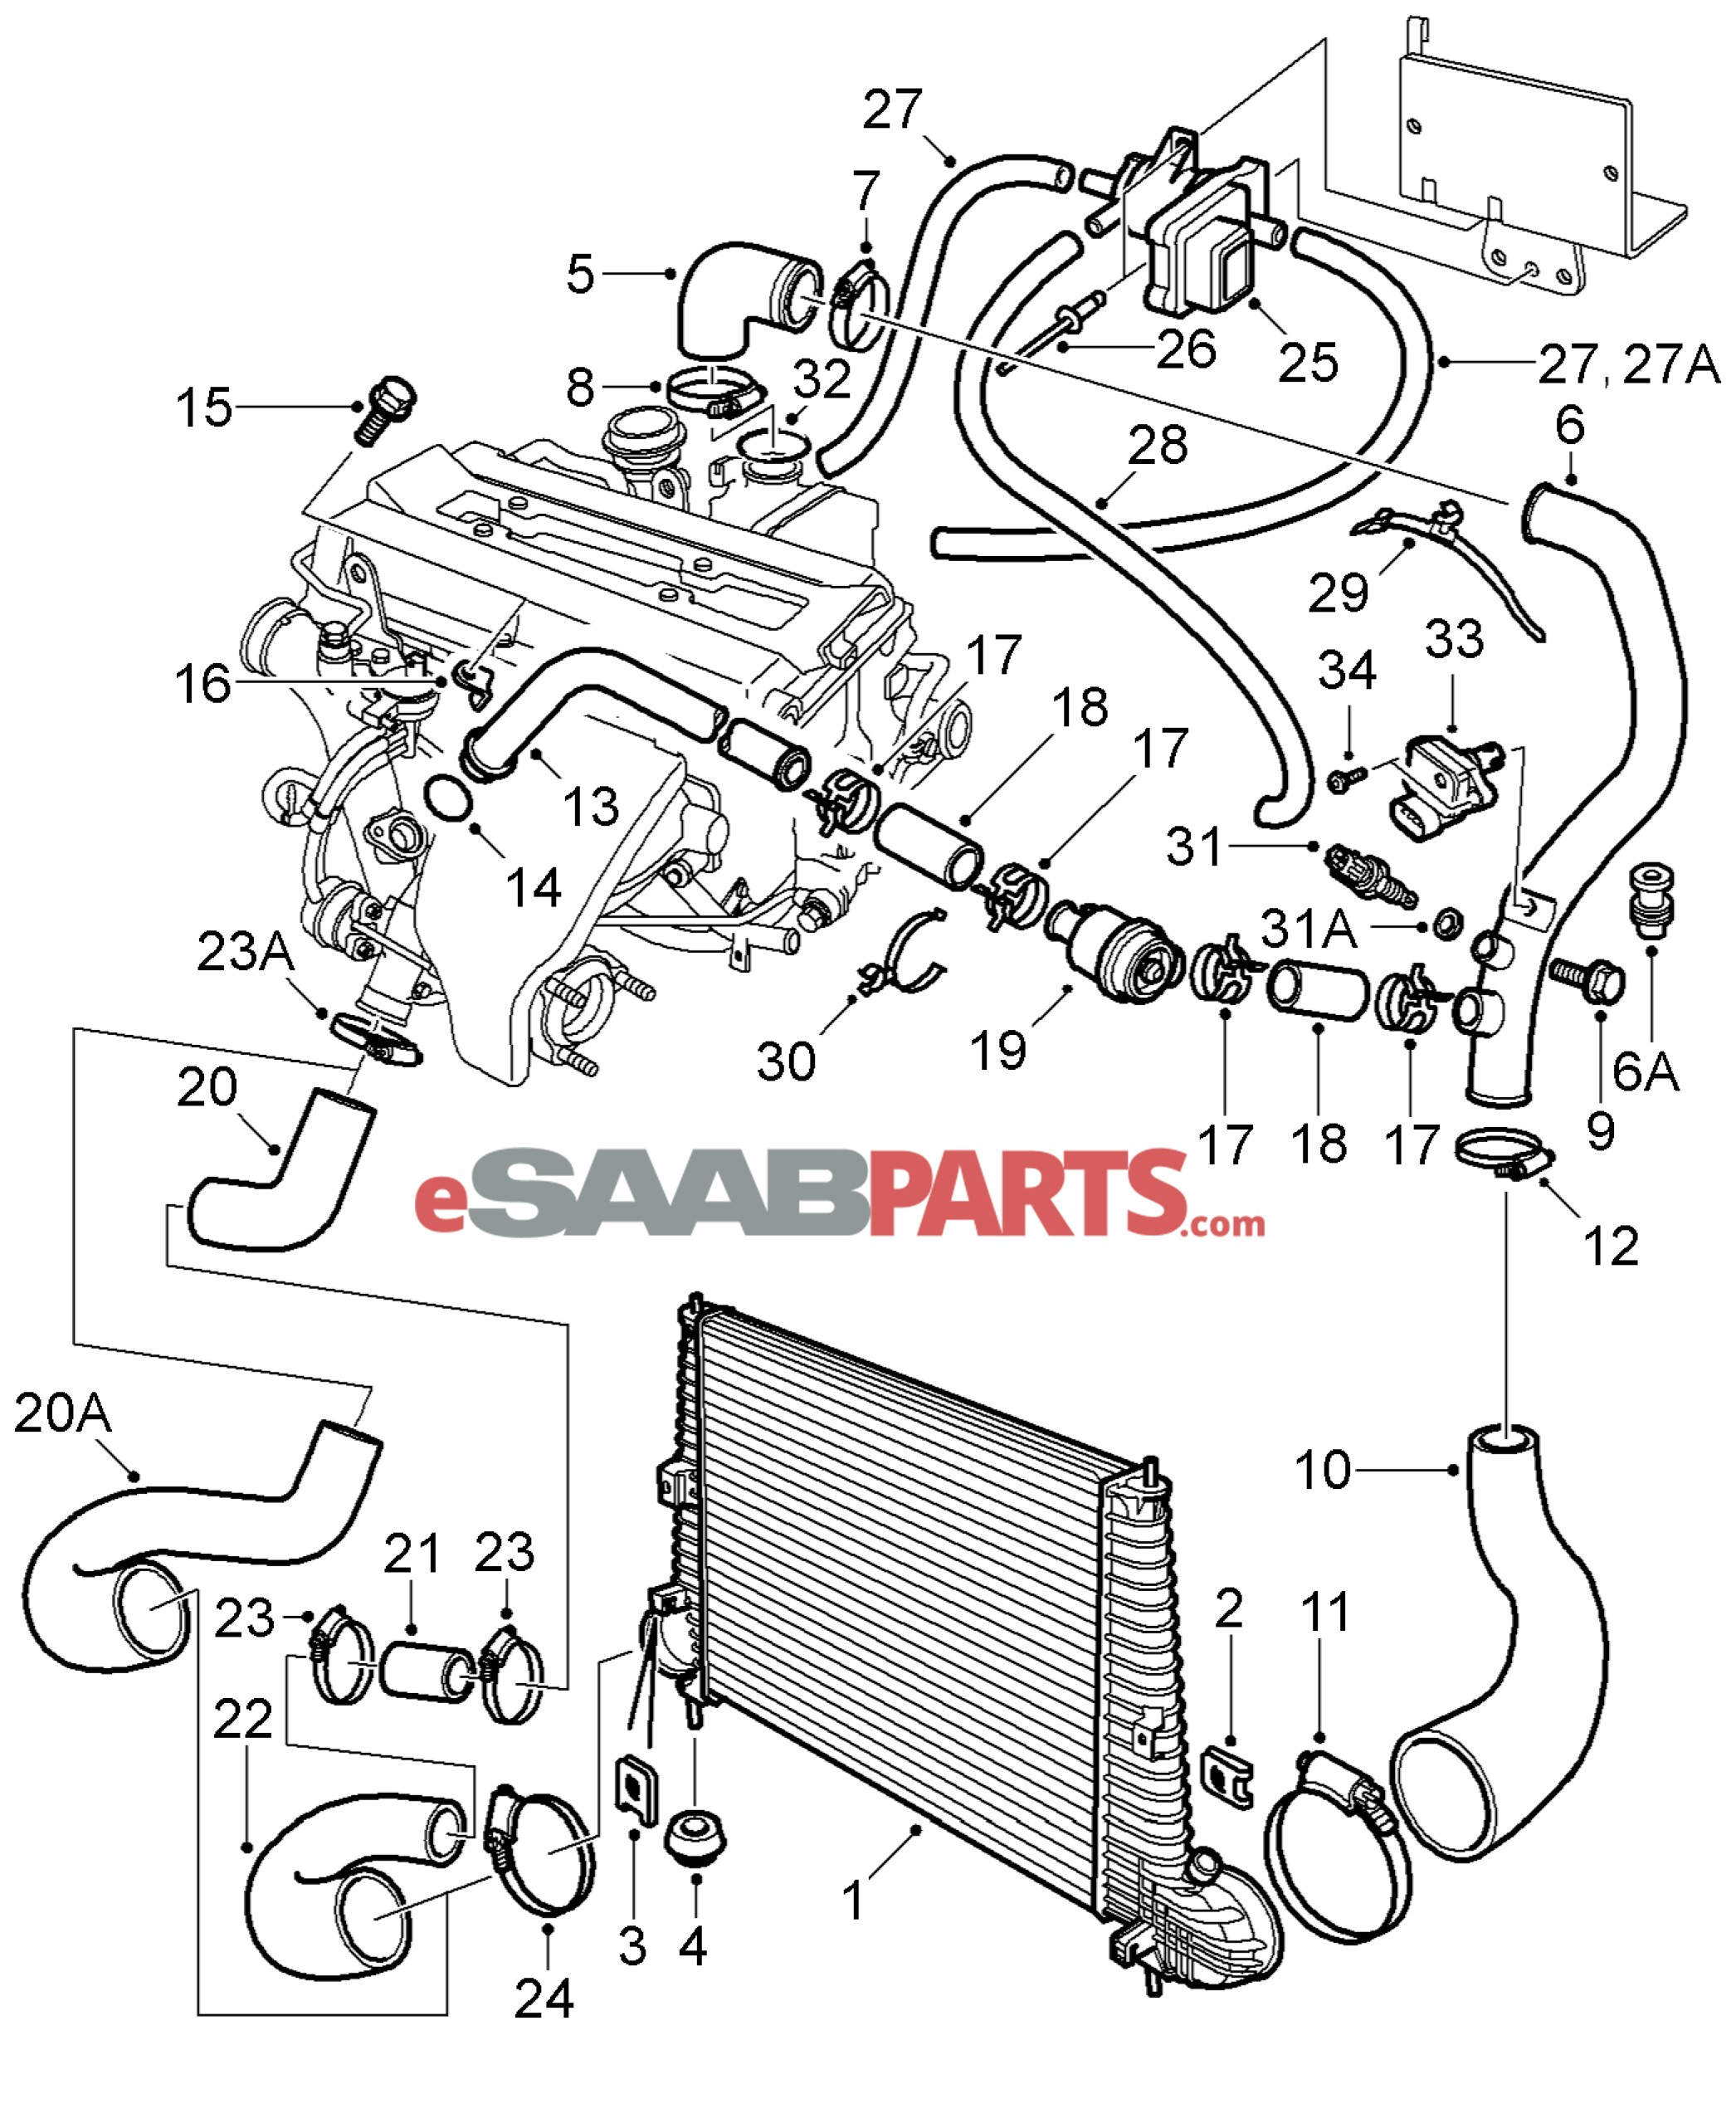 Saab 900 Turbo Wiring Diagram Library 1992 2 8 Engine Explore Schematic U2022 Rh Webwiringdiagram Today